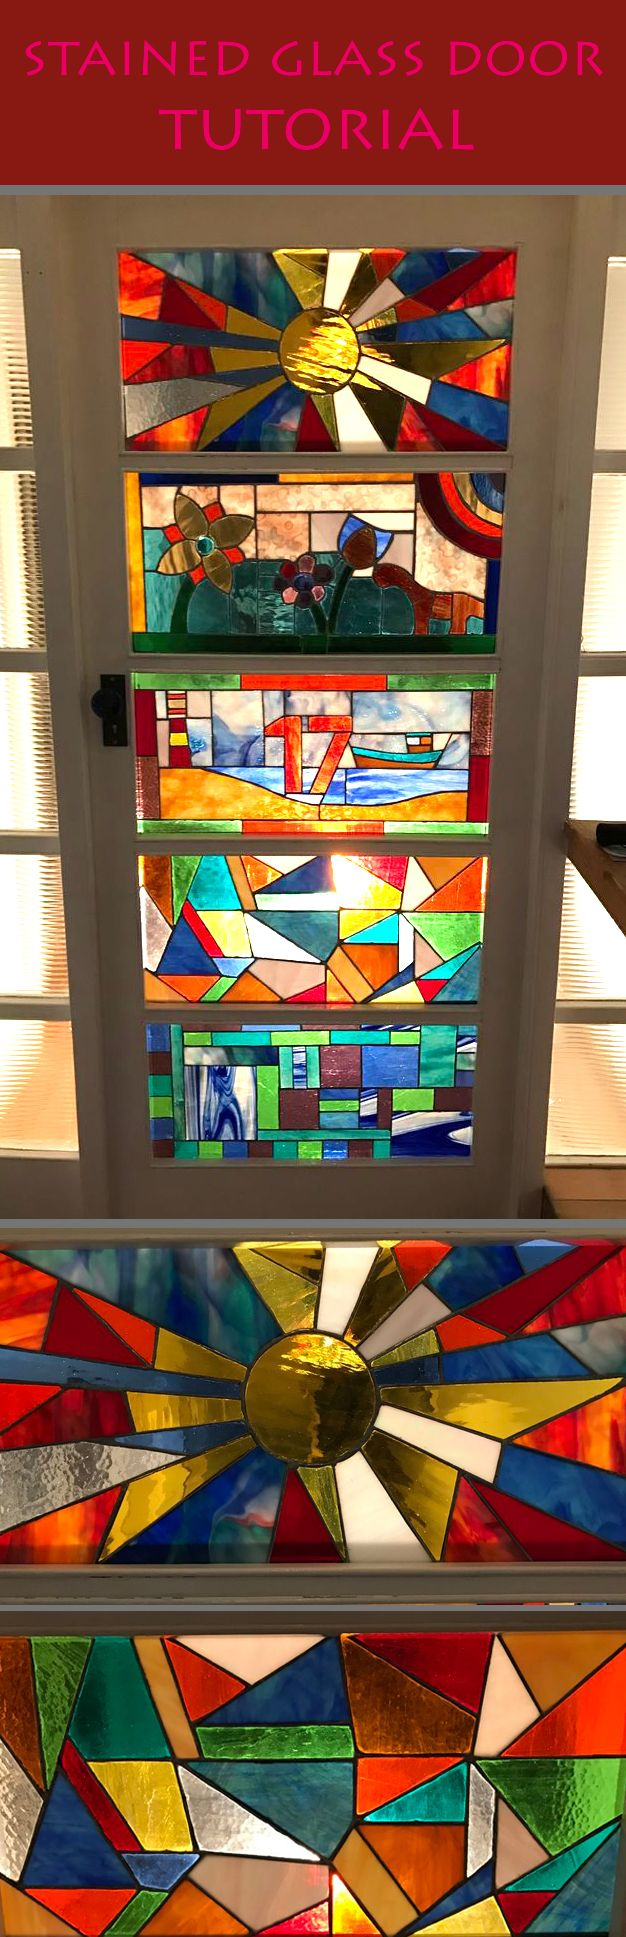 How to make stained glass panels.